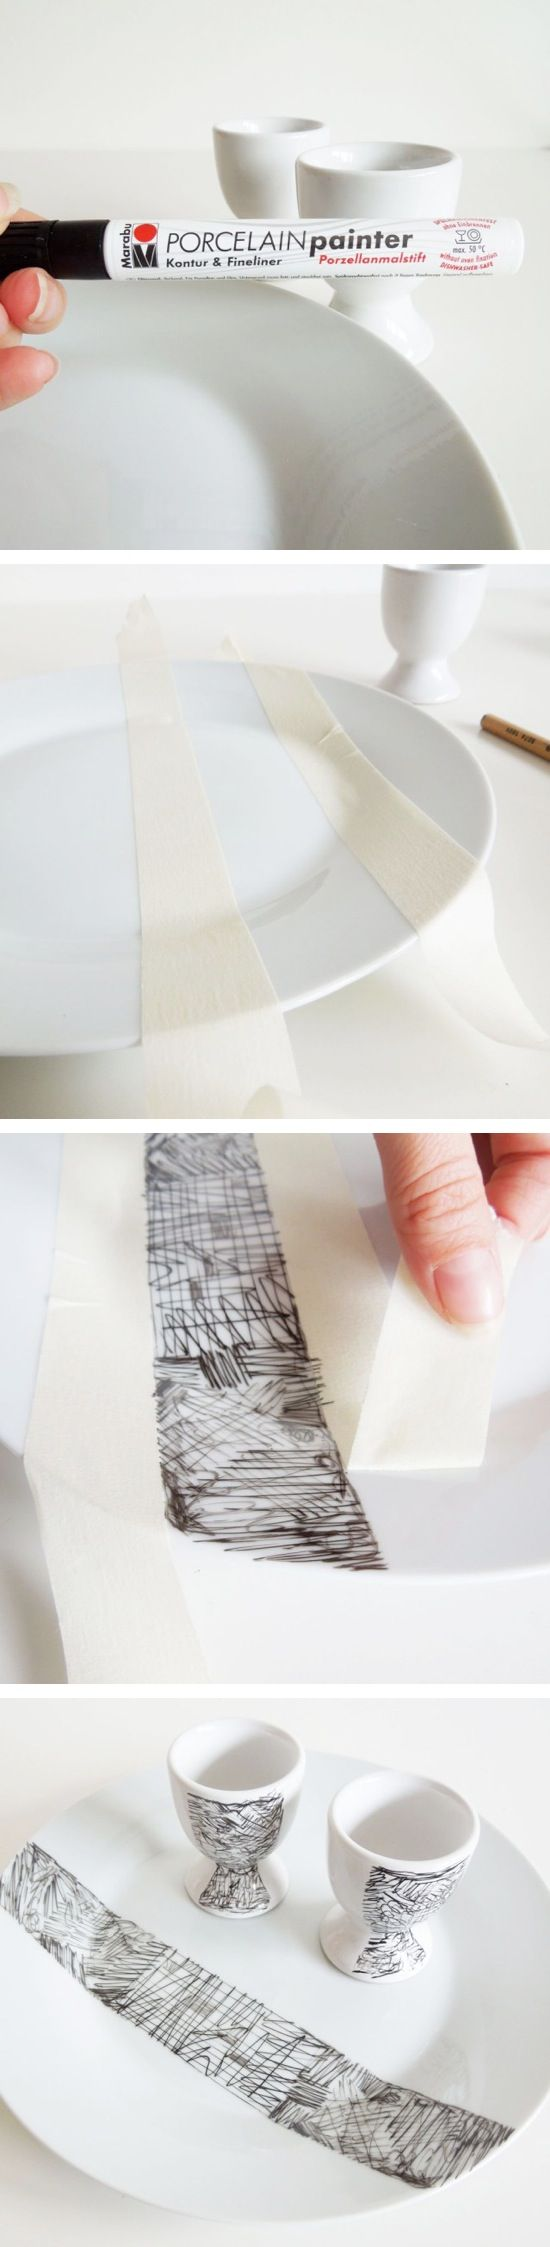 From CRAFT BY PHOTO: Scribble Decorated Porcelain #DIY #adelinecrafts #getcreative